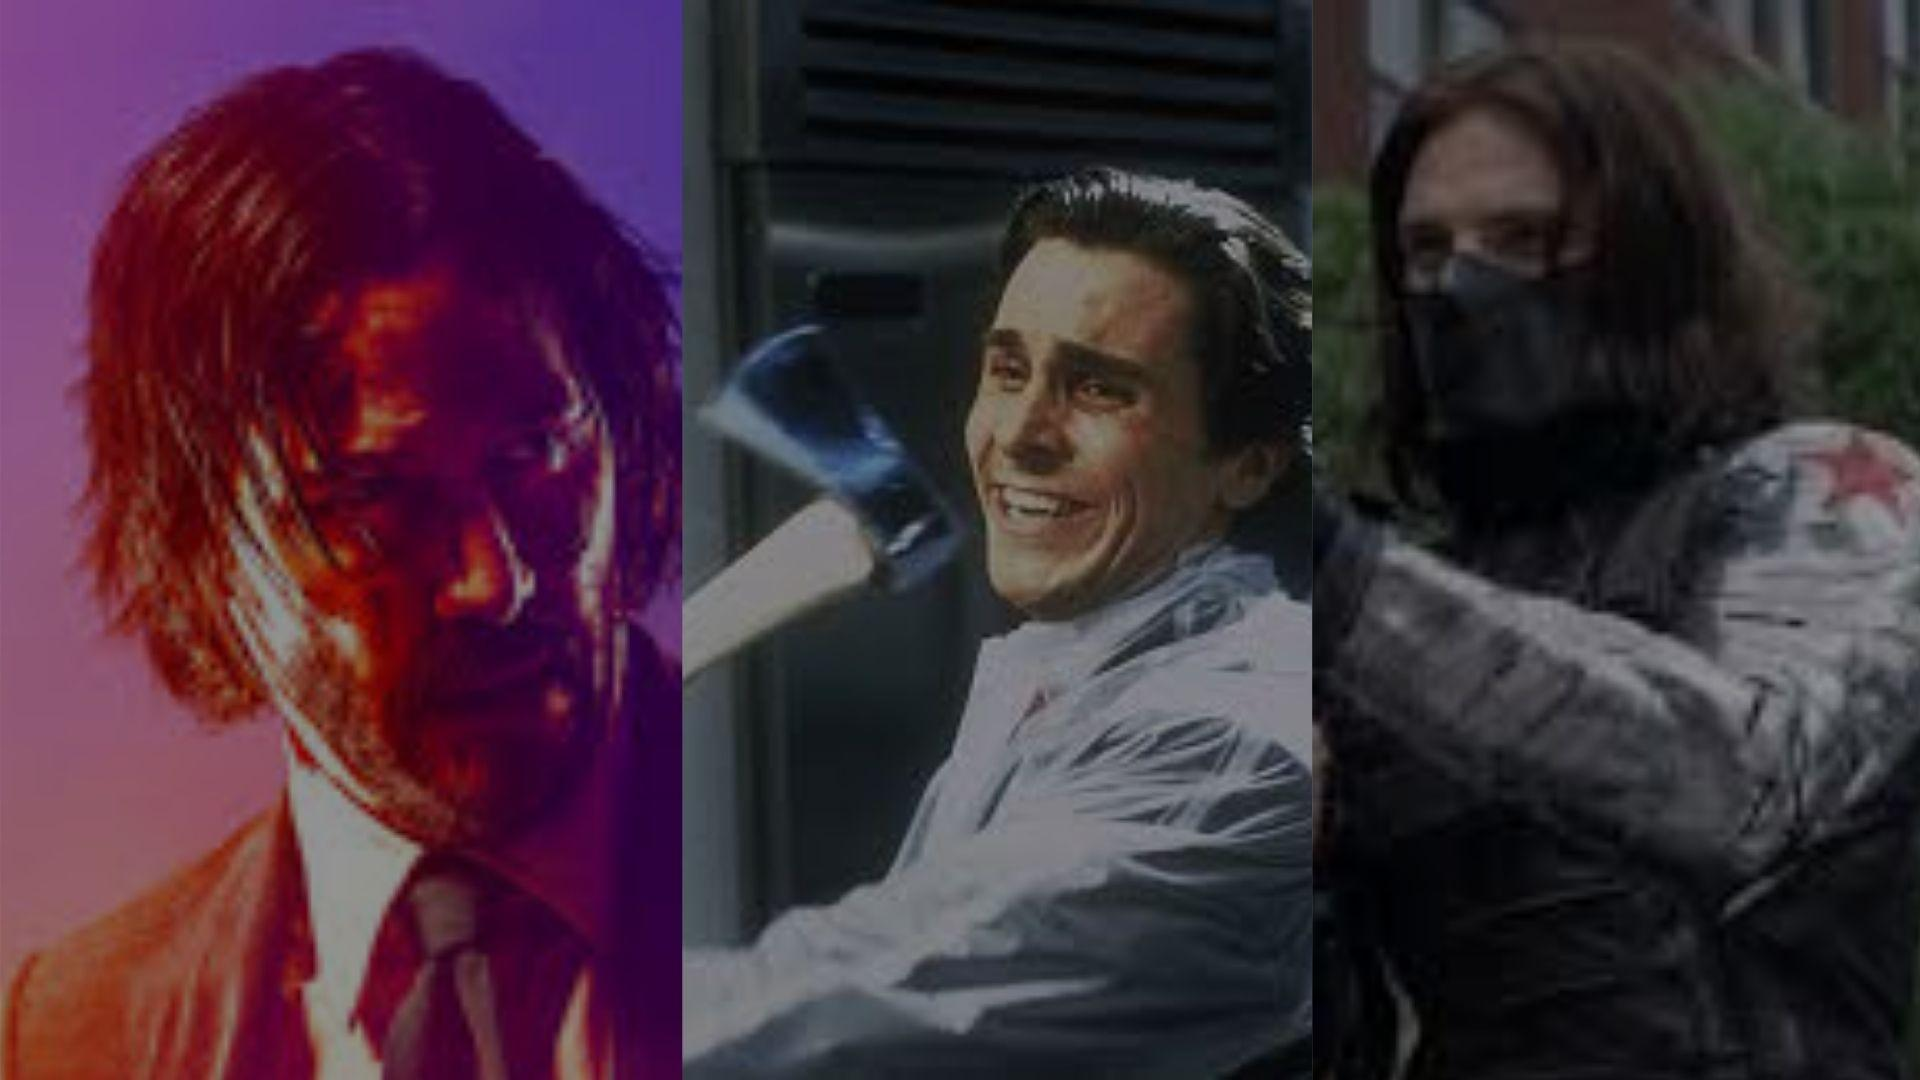 Top 10 Most Rewatched Action Movie Scenes Ever in Hollywood